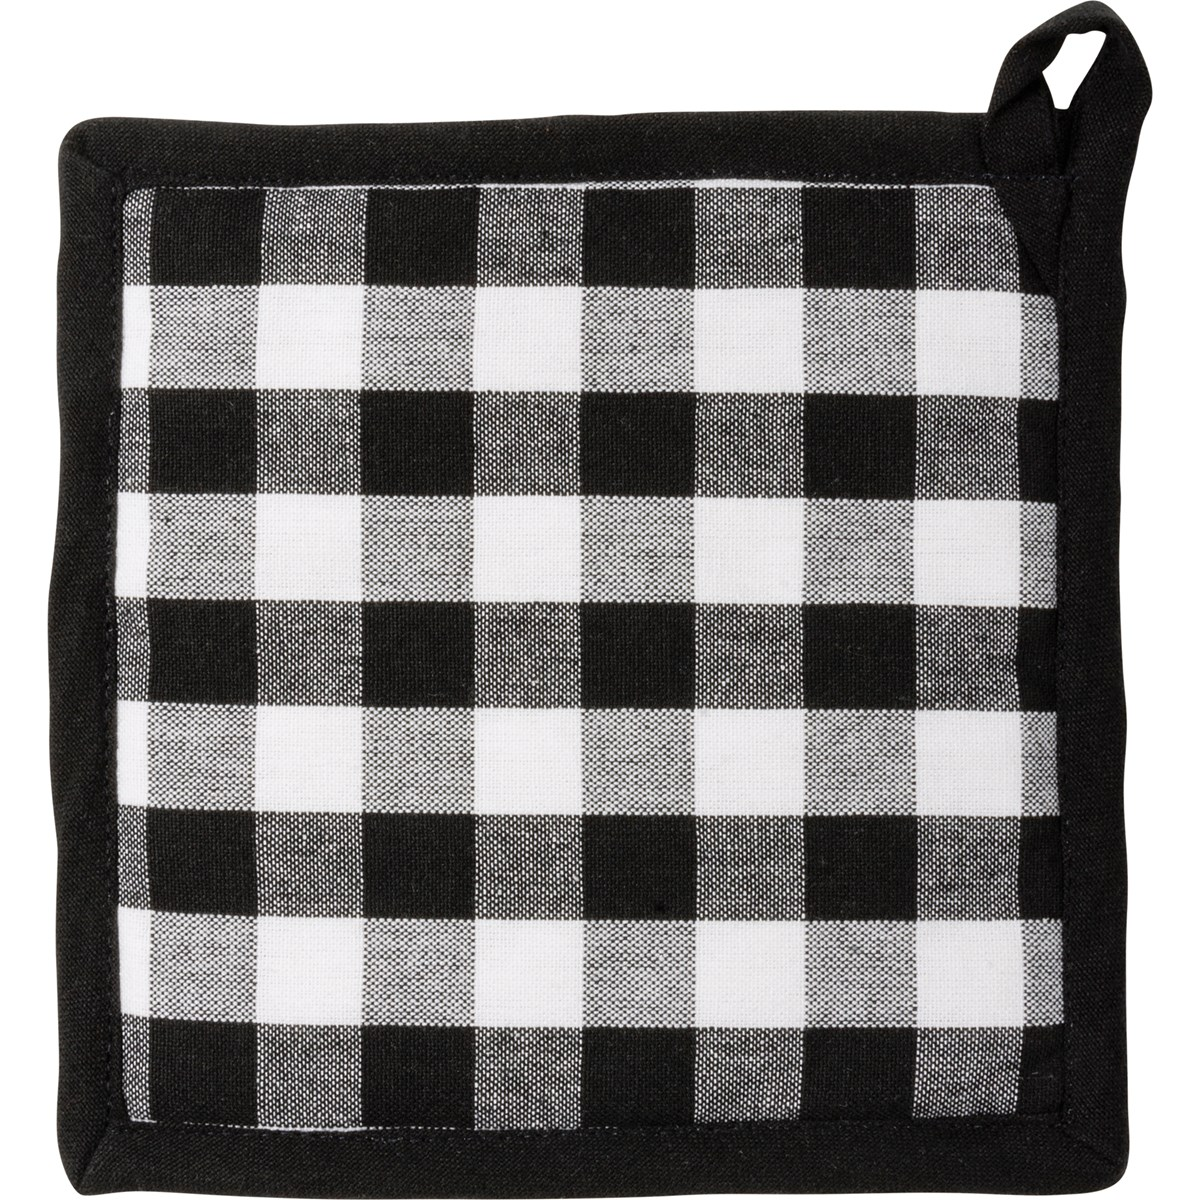 "Kitchen Set - Black Buff Check - 7"" x 13"", 8"" x 8"" - Cotton"